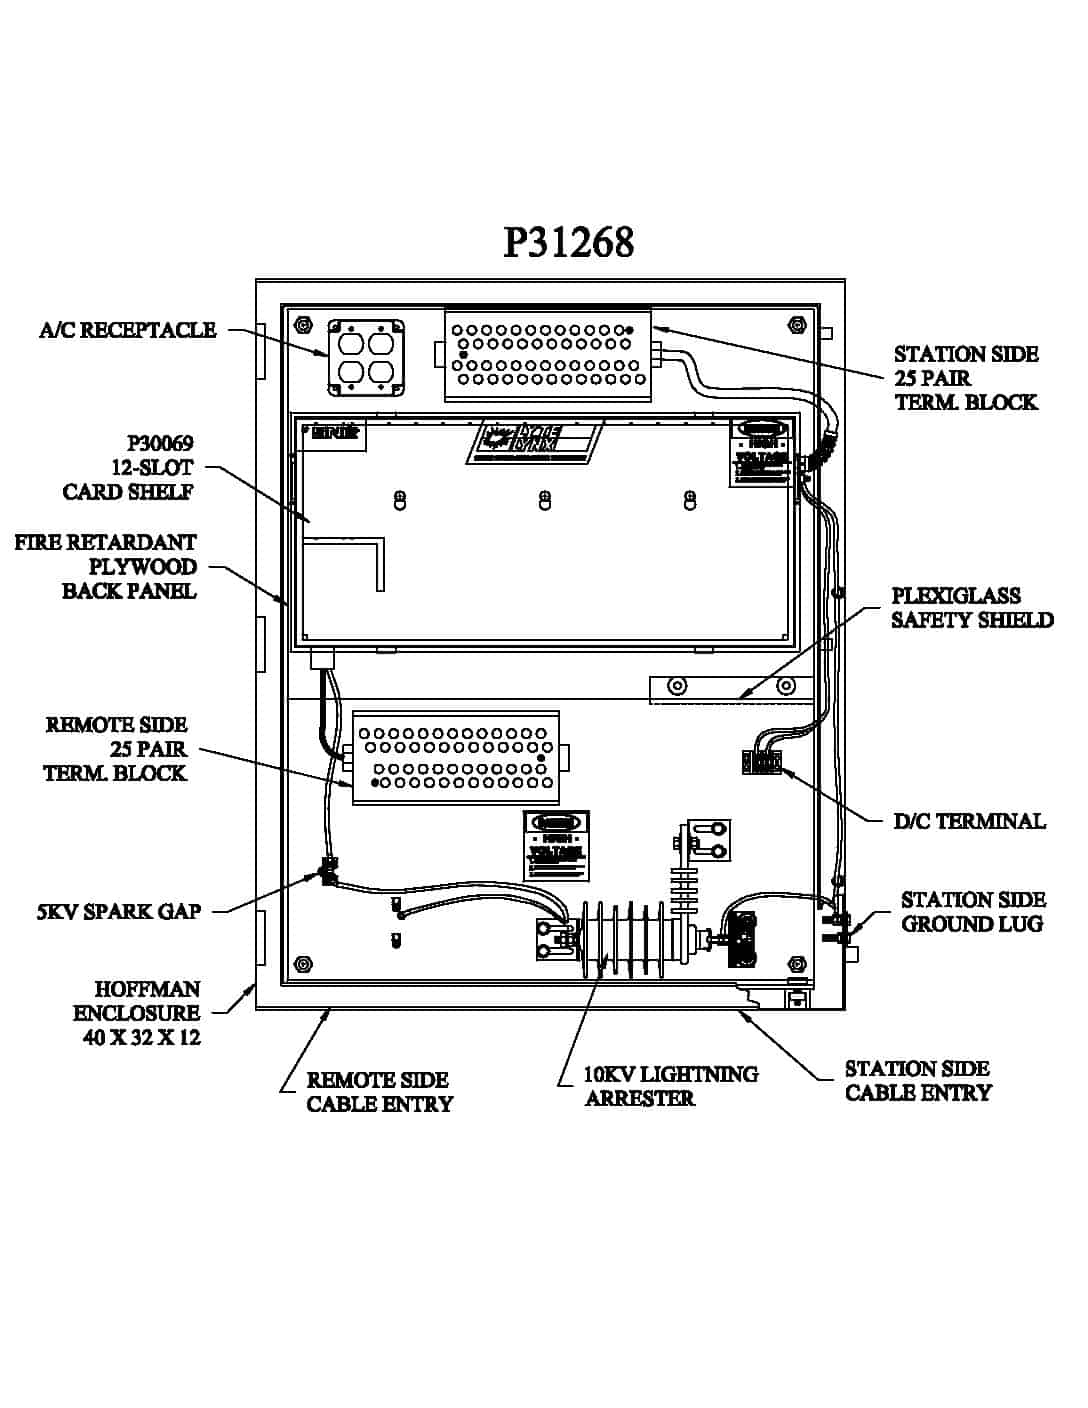 P31268 Turnkey Protection Packages – 12 slot PDF thumbnail